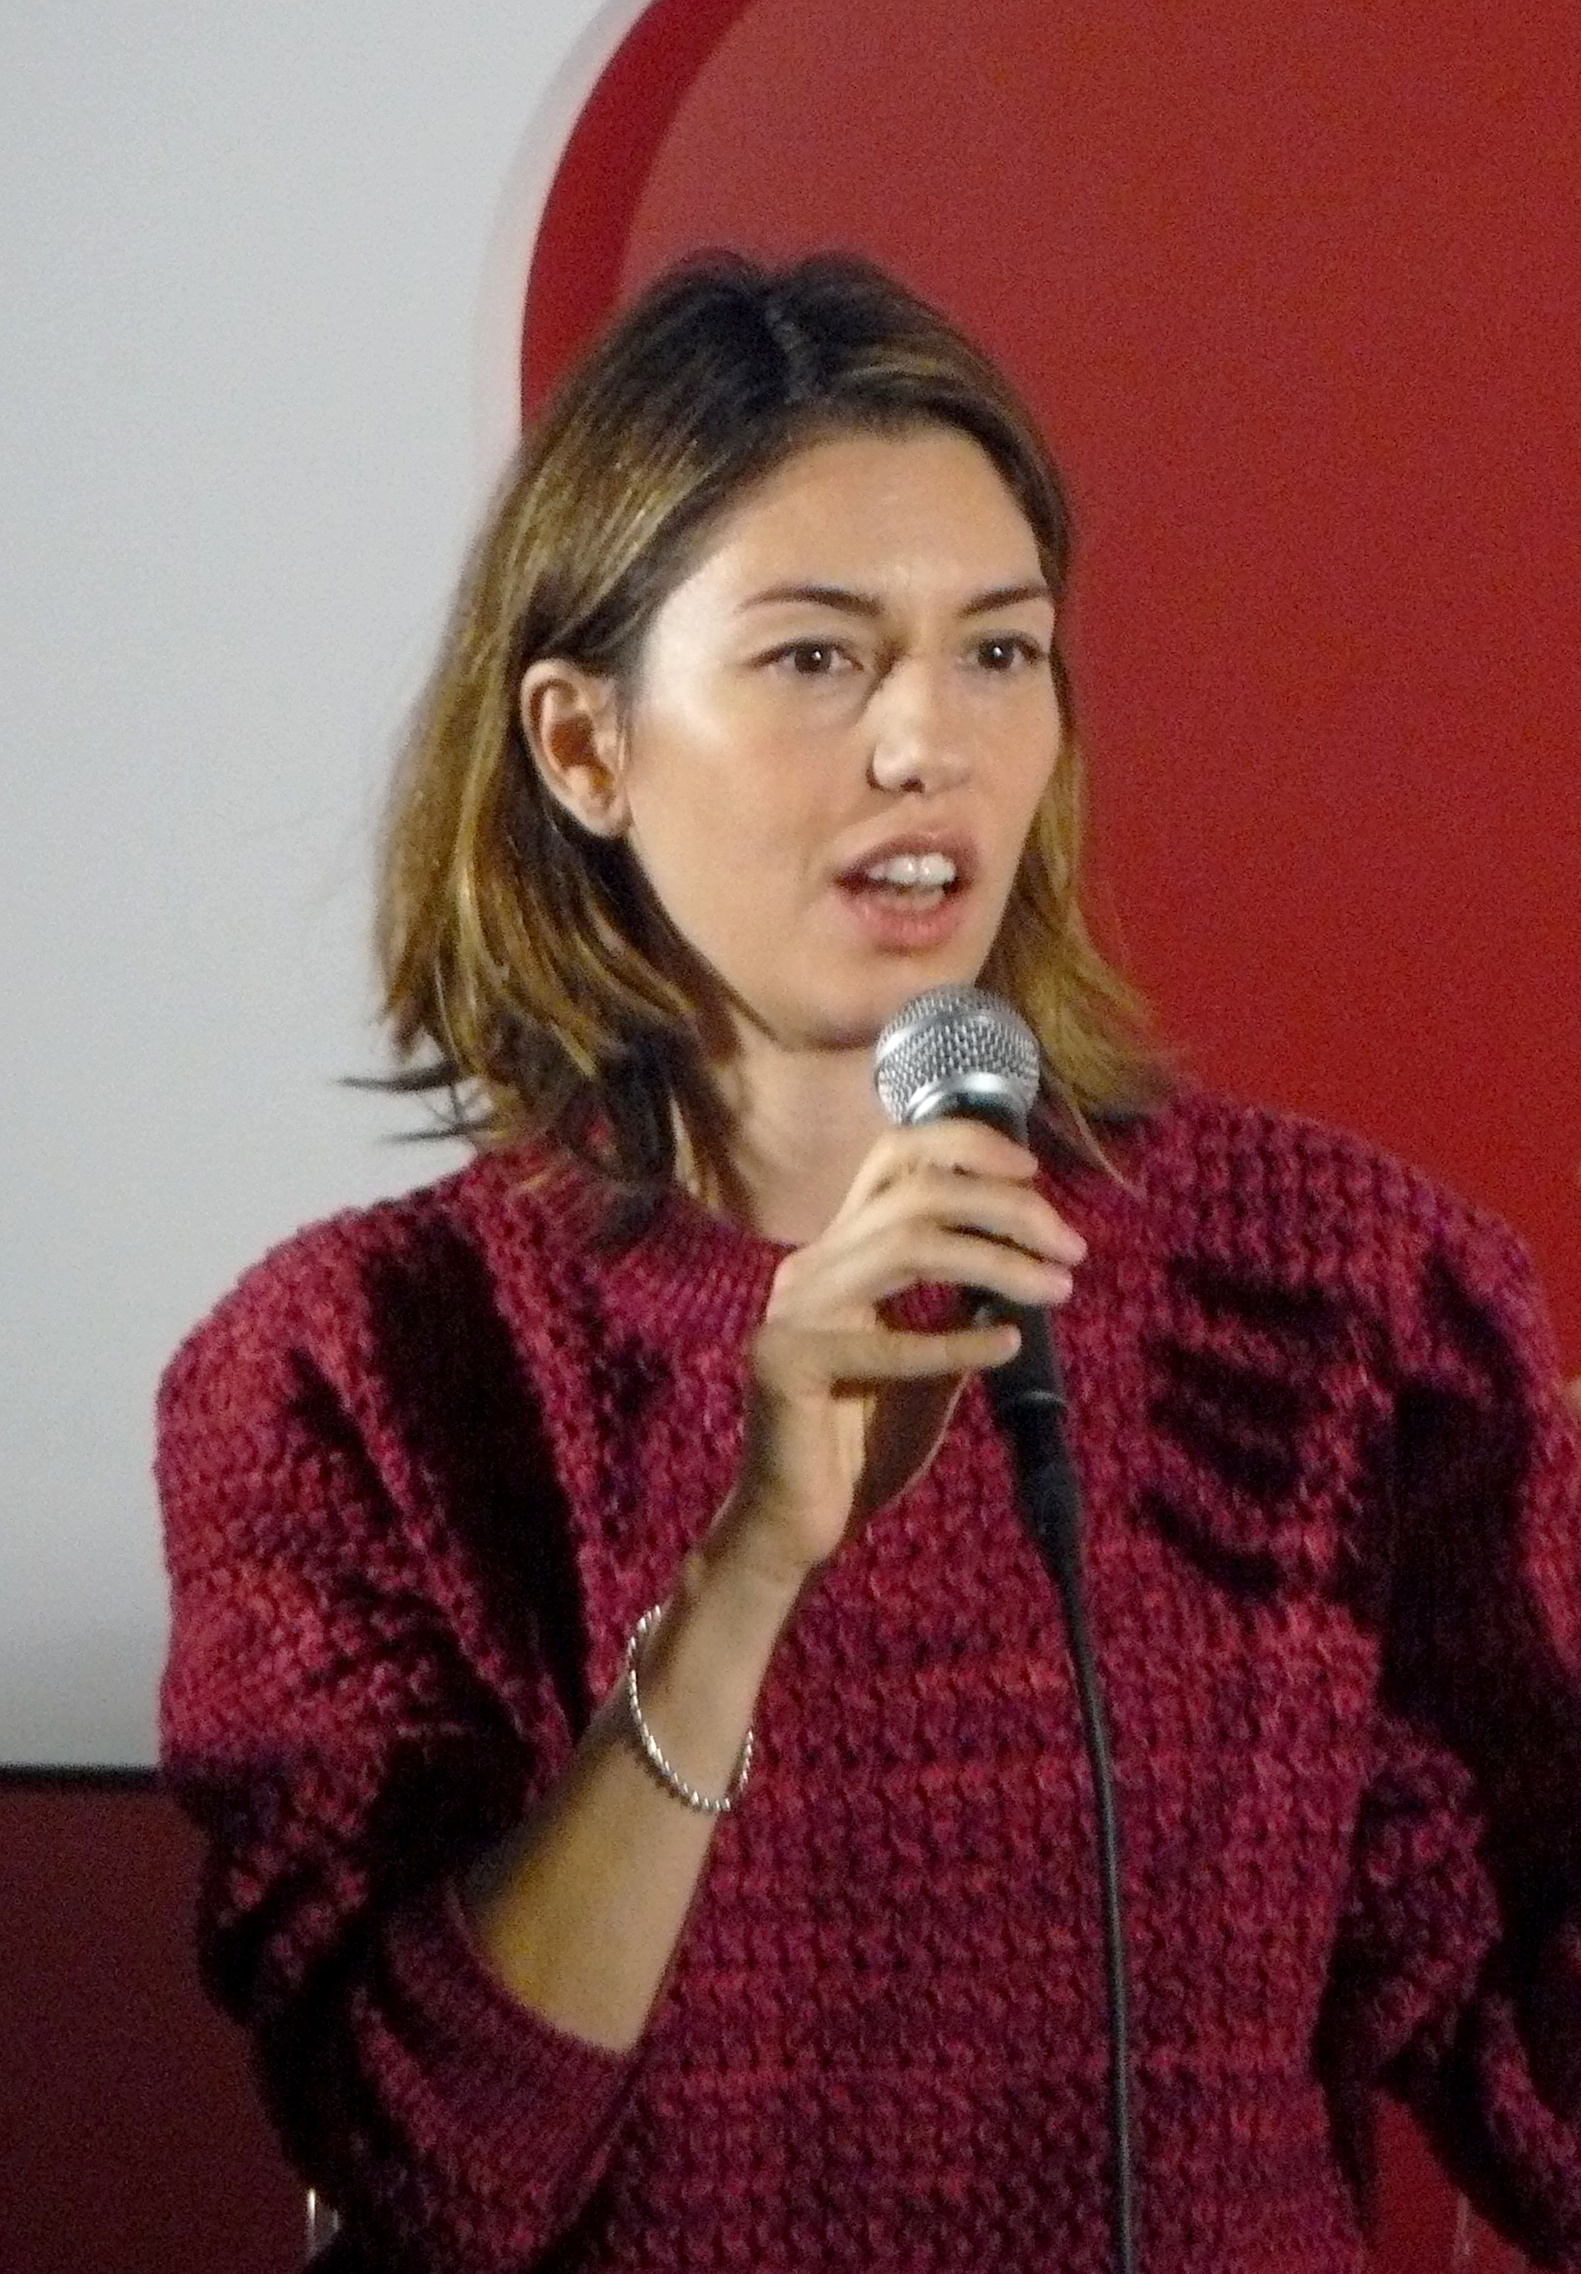 Sofia Coppola Wikipedia